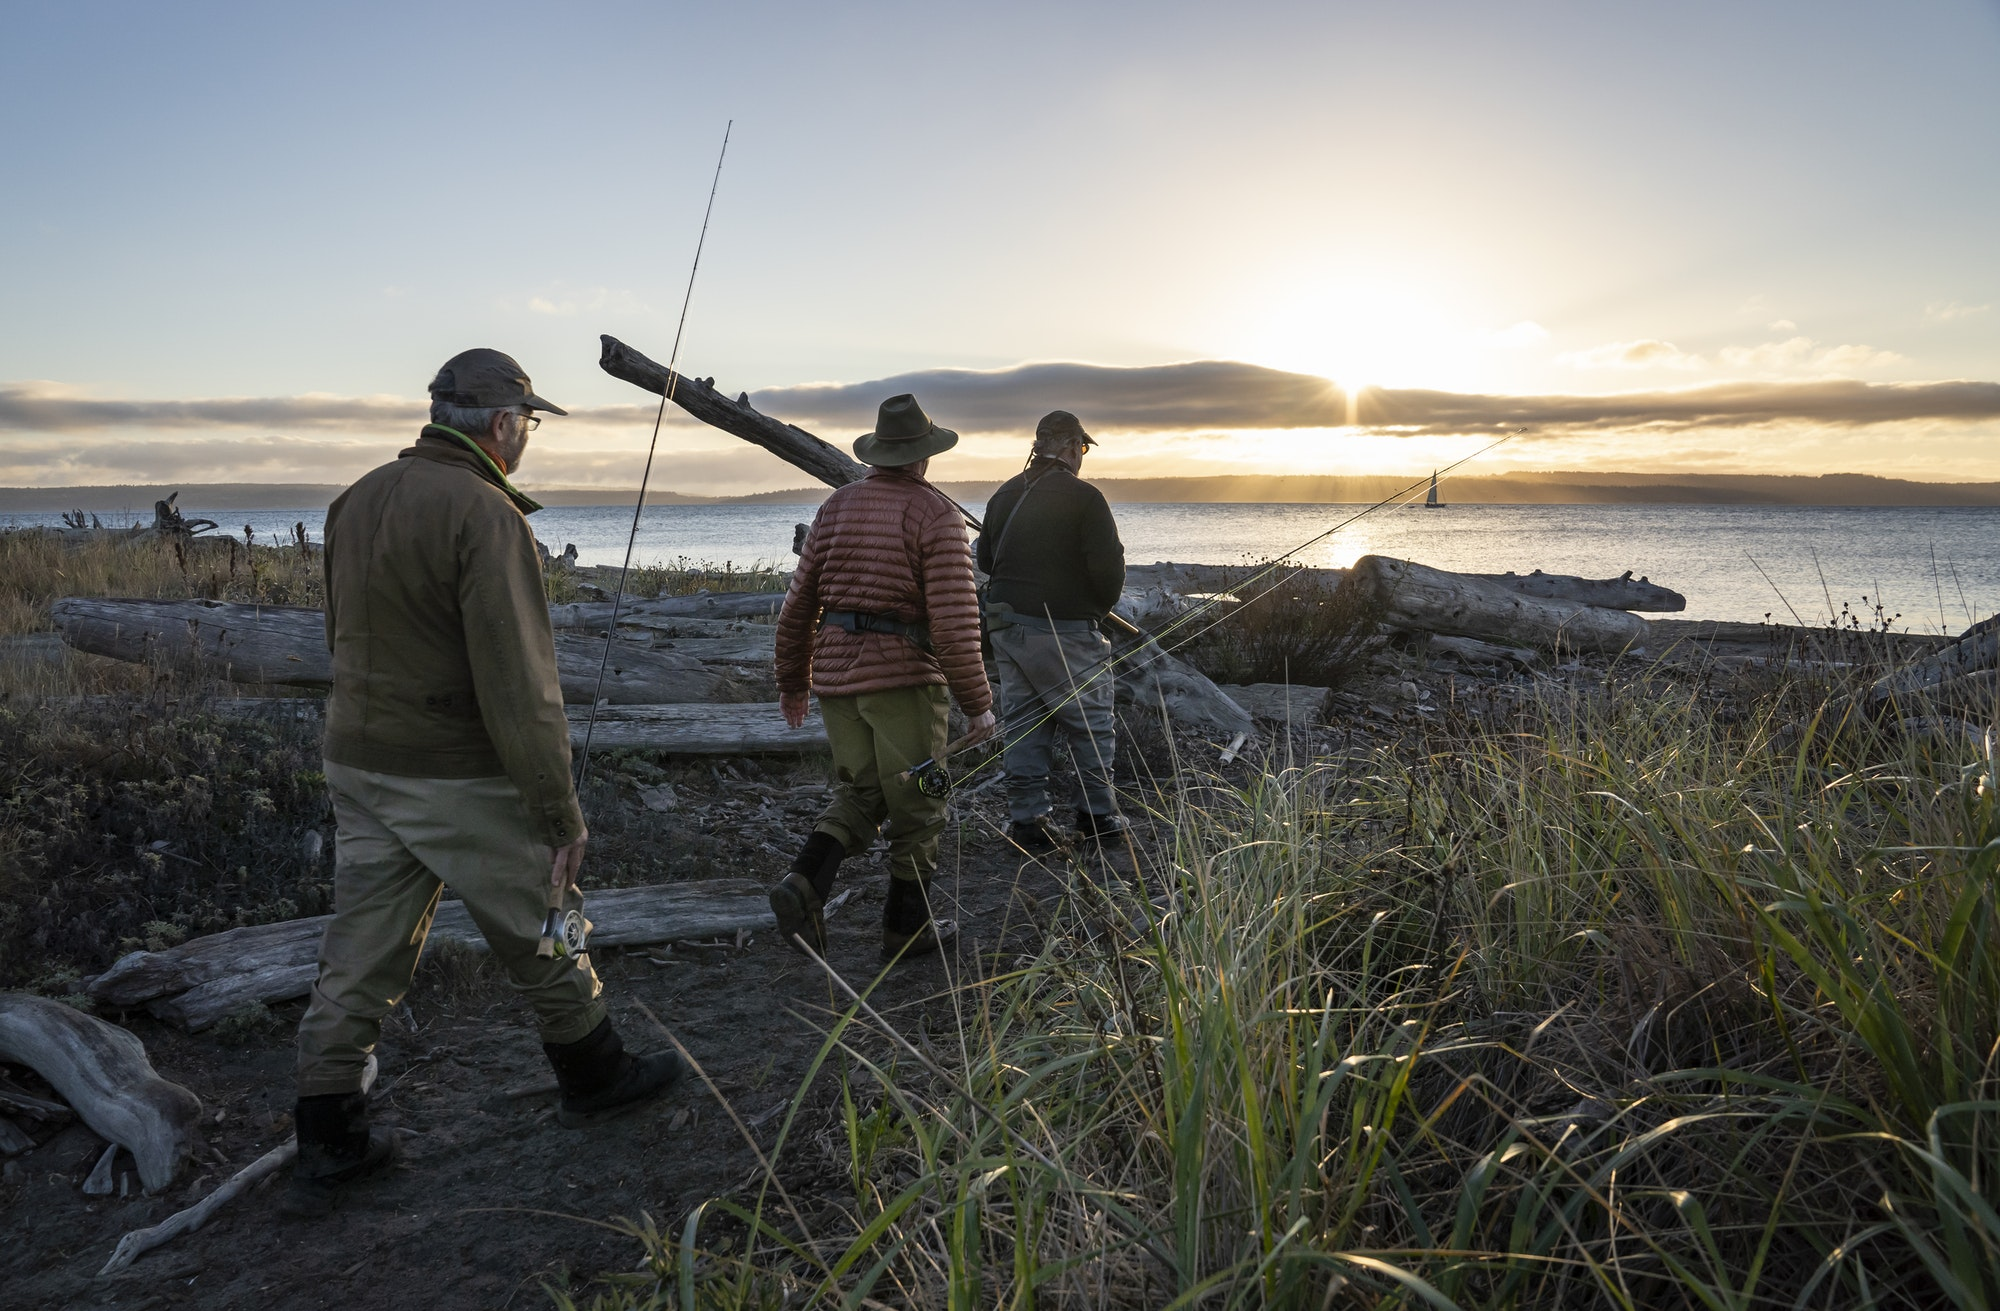 Two fly fisherman and a guide walk to a salt water beach at sunrise to fish for searun coastal